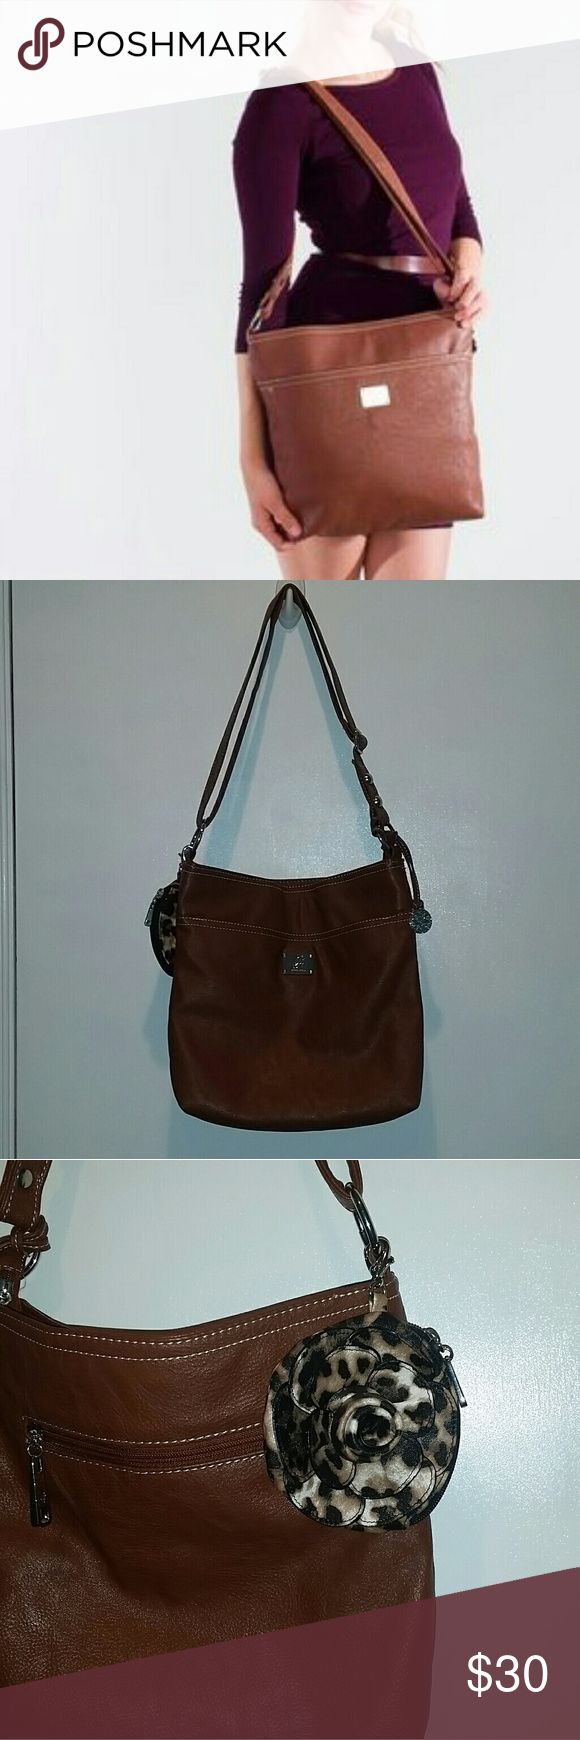 Grace Adele Crossbody Grace Adele Crossbody. Zip Closure, Zip Pocket on back, Adjustable Straps, and a magnetic pocket on front. Very Roomy. Gently Used / Excellent Condition Grace Adele Bags Crossbody Bags